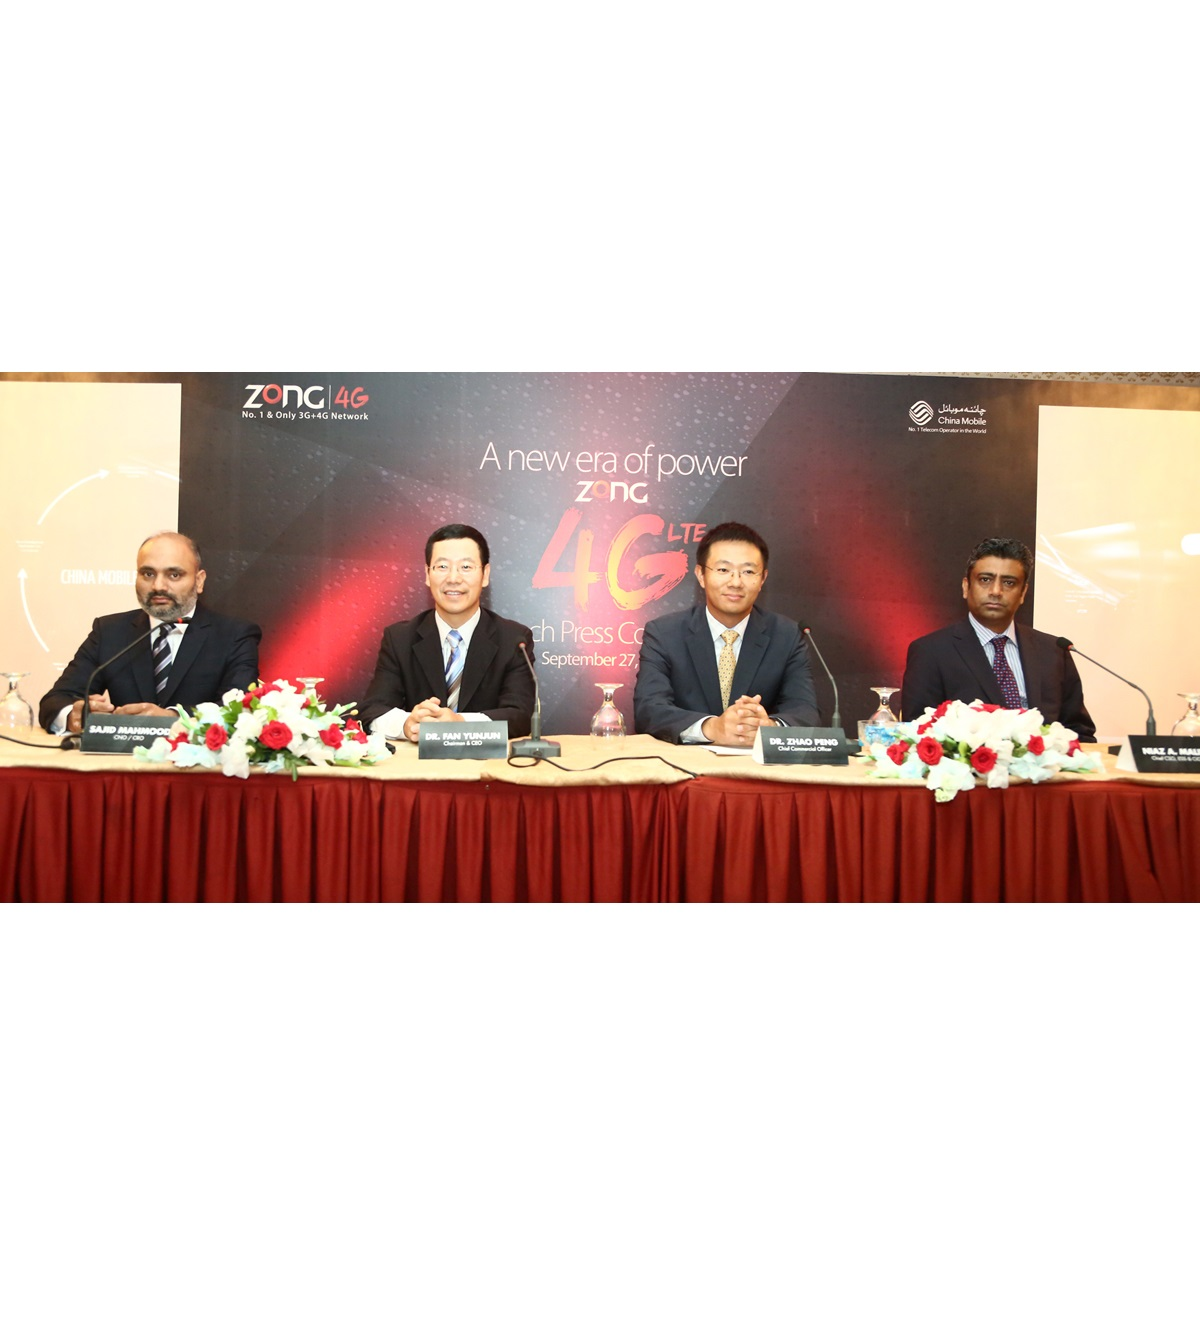 Zong Launches the First 4G LTE Service in Pakistan